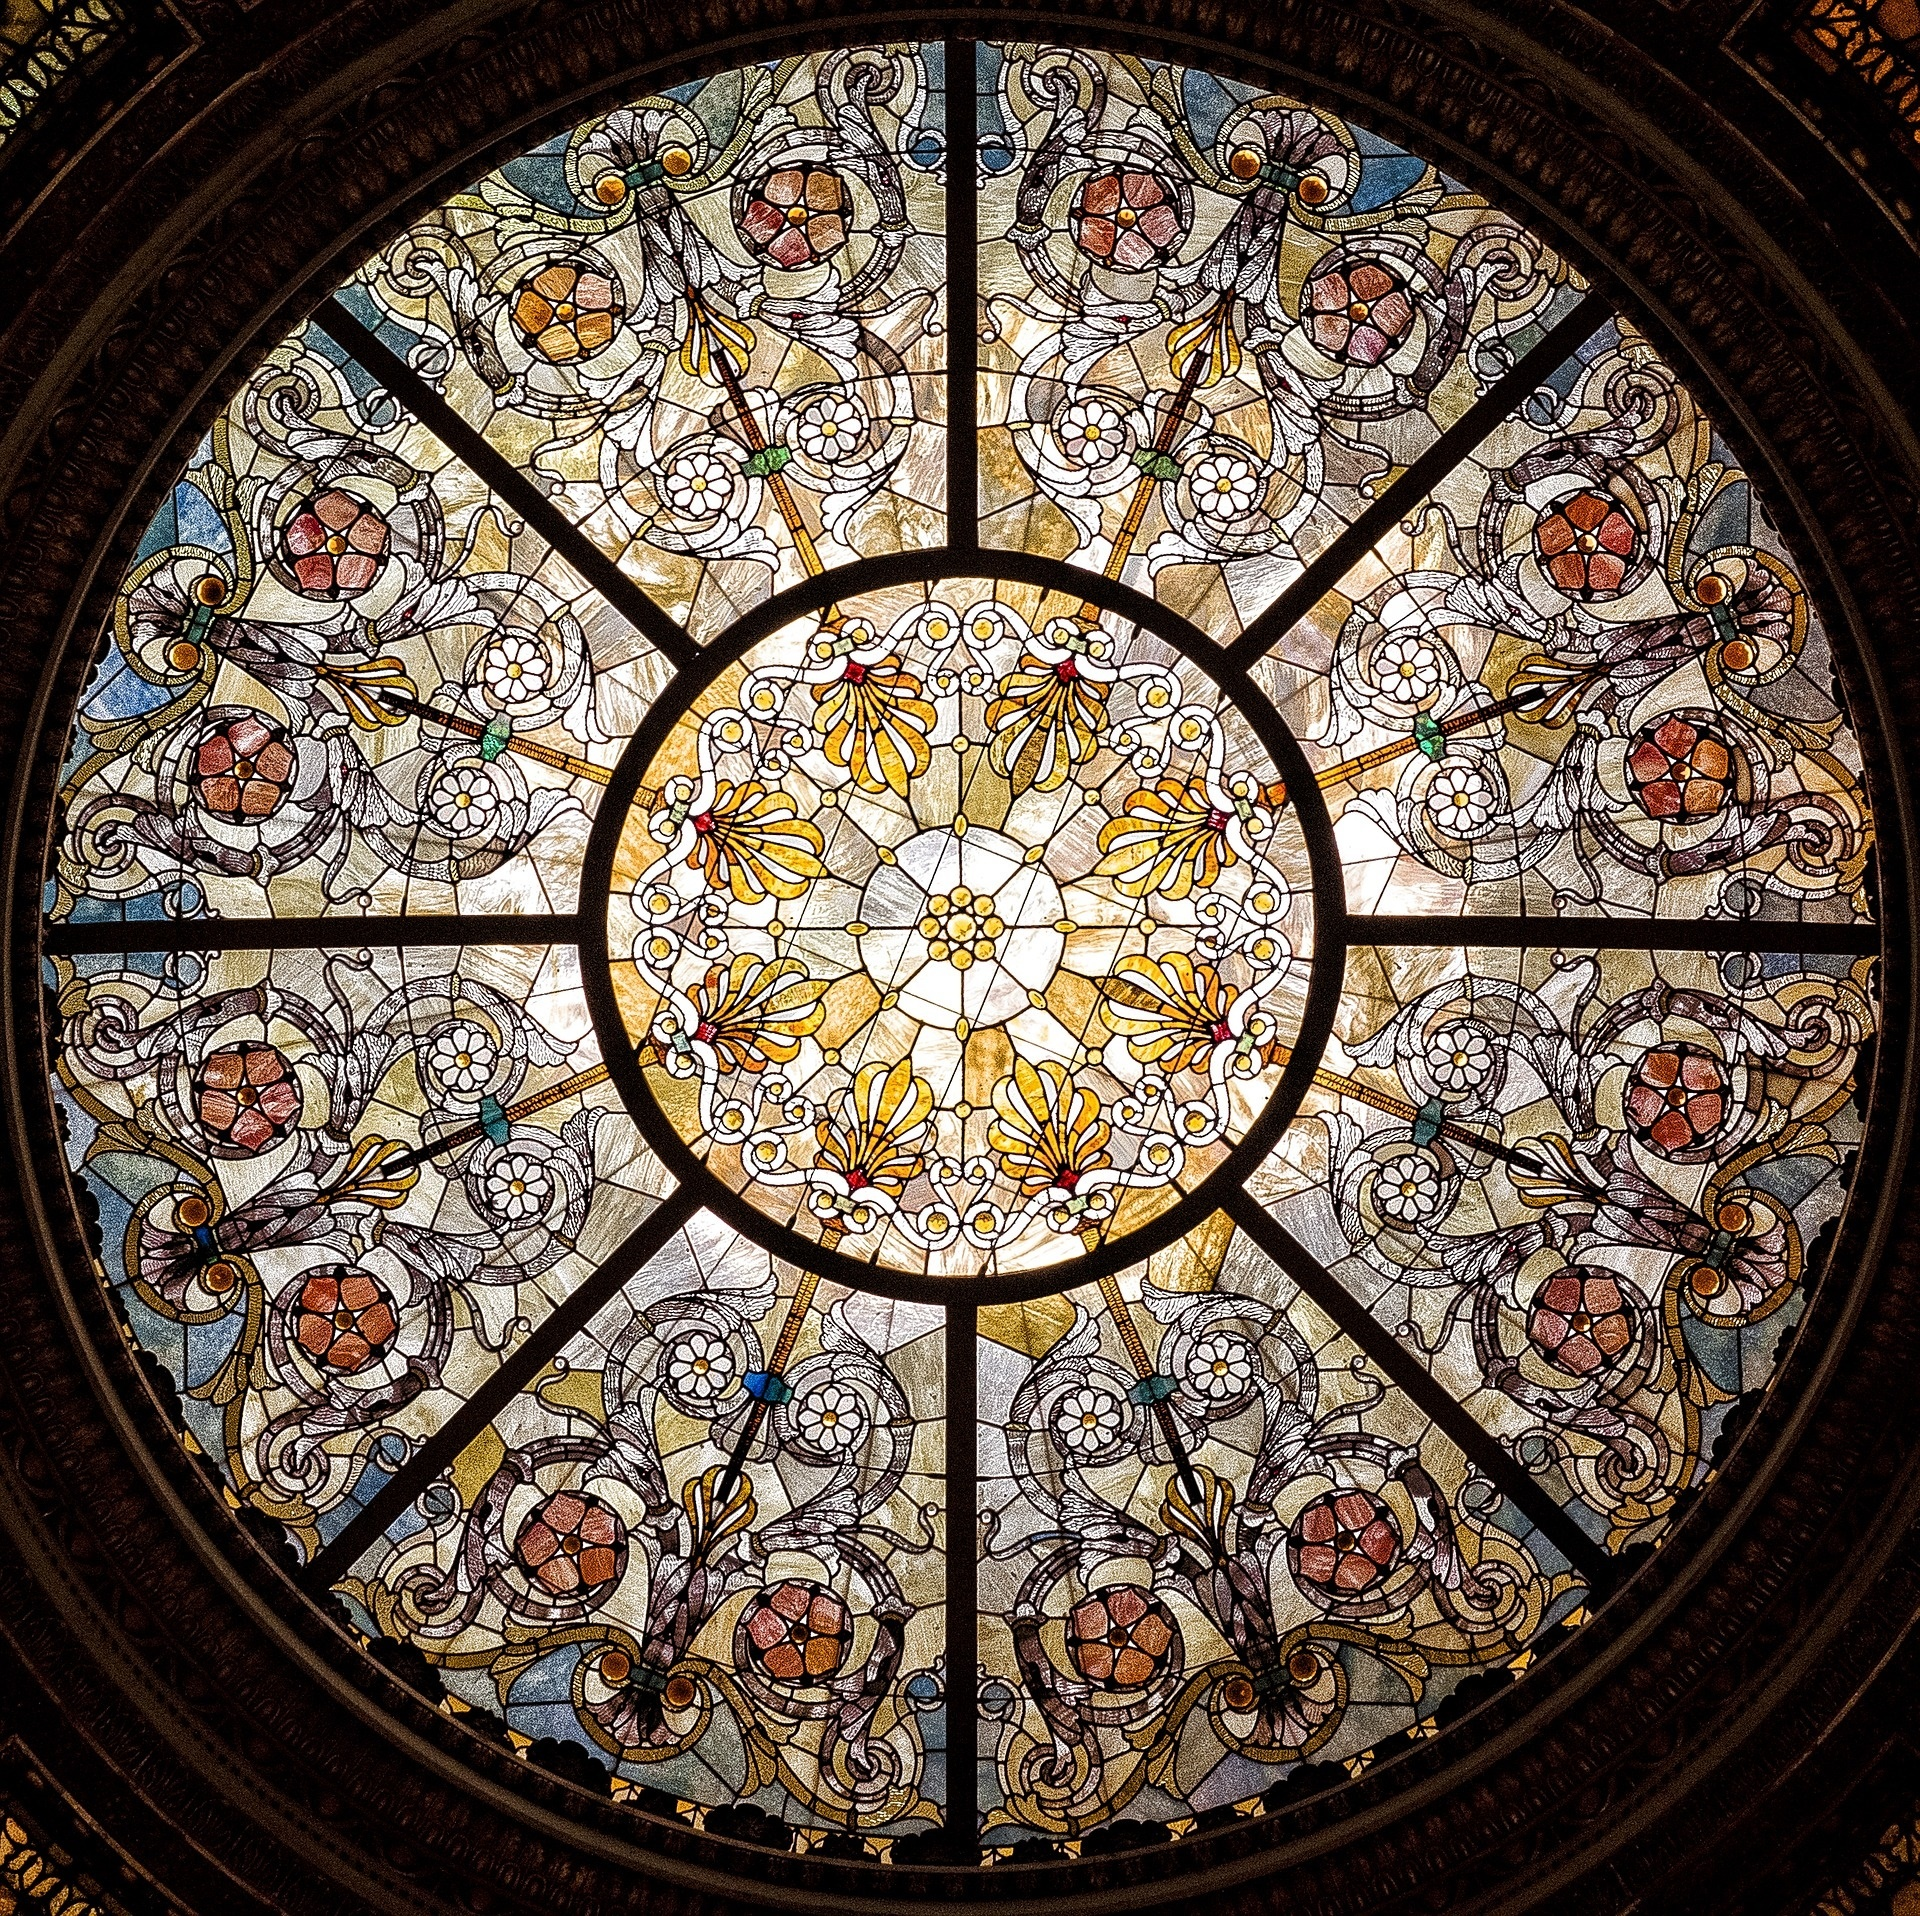 Png 3d Wallpaper Stained Glass Free Stock Photo Public Domain Pictures